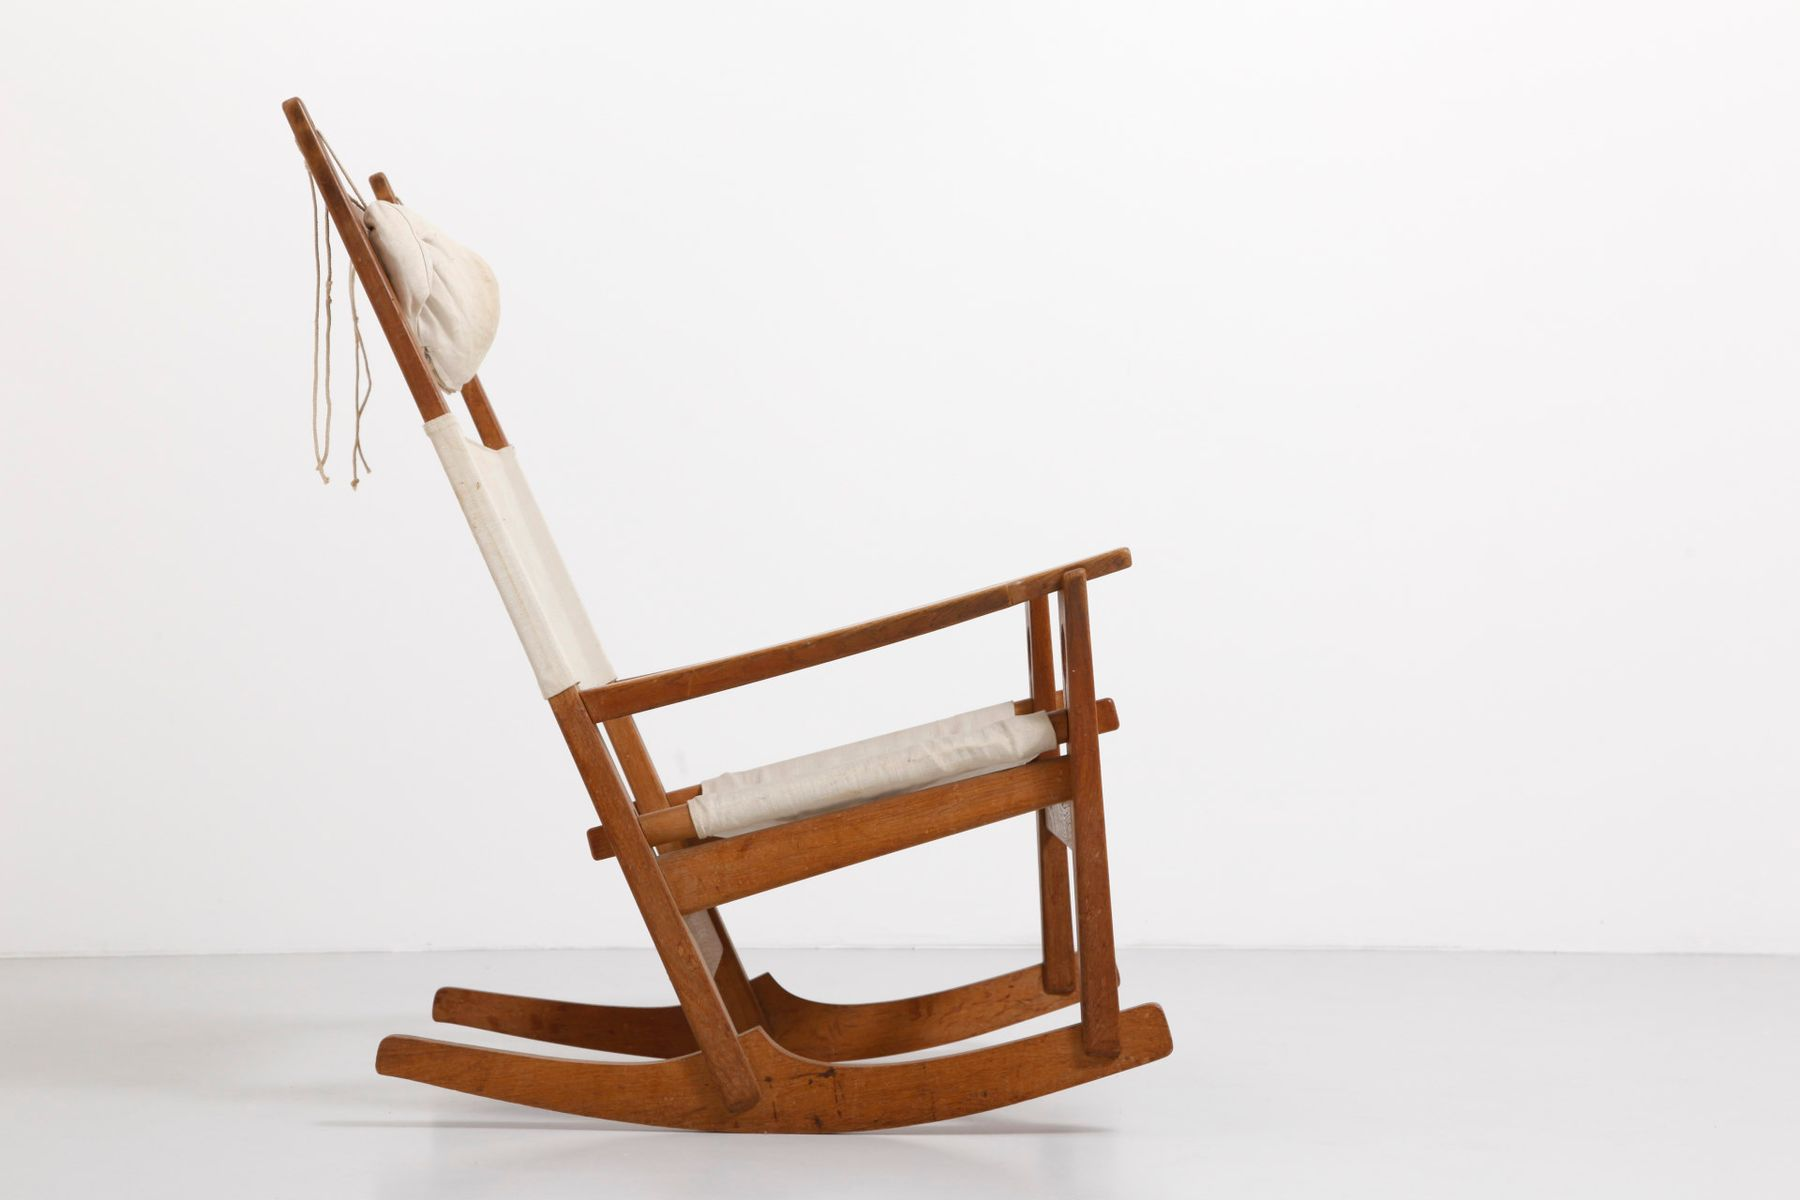 Keyhold GE673 Rocking Chair By Hans J. Wegner For Getama For Sale At . Full resolution‎  portraiture, nominally Width 1800 Height 1200 pixels, portraiture with #492814.